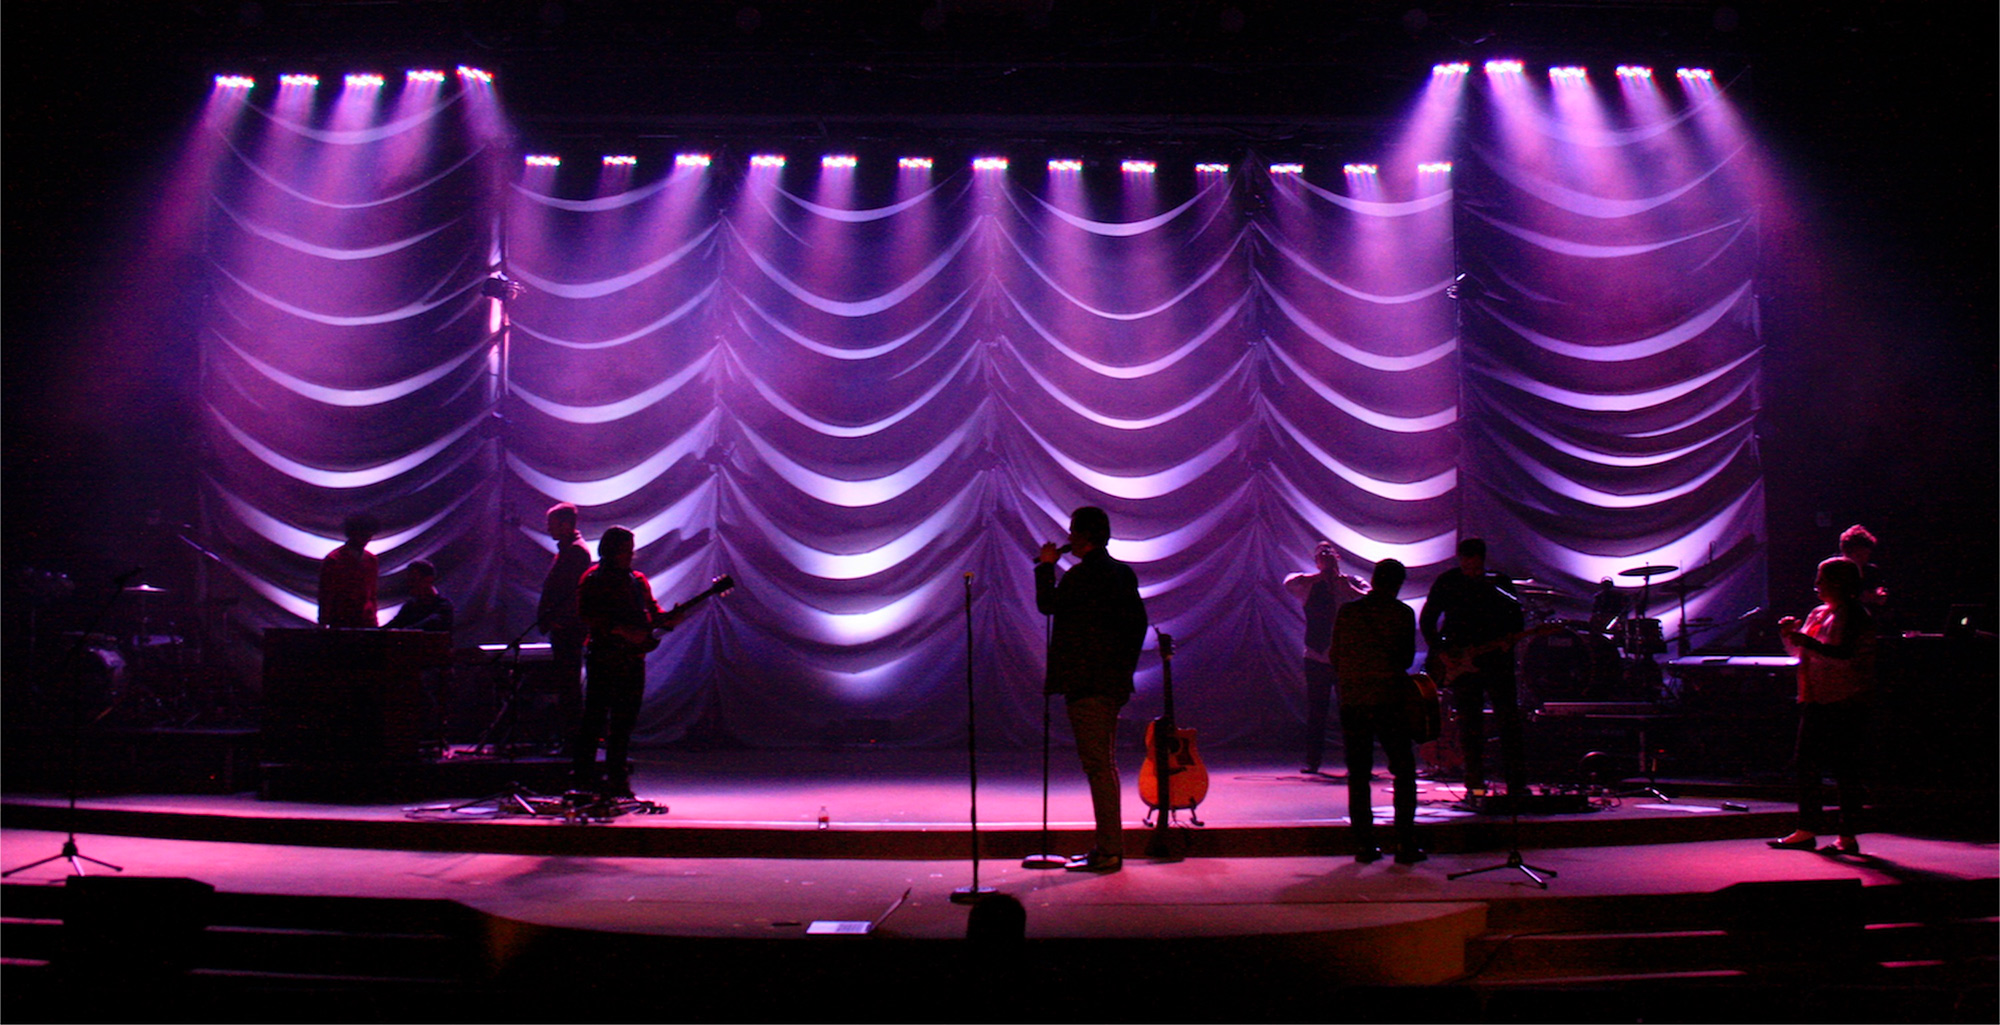 rippling background church stage design ideas - Stage Design Ideas